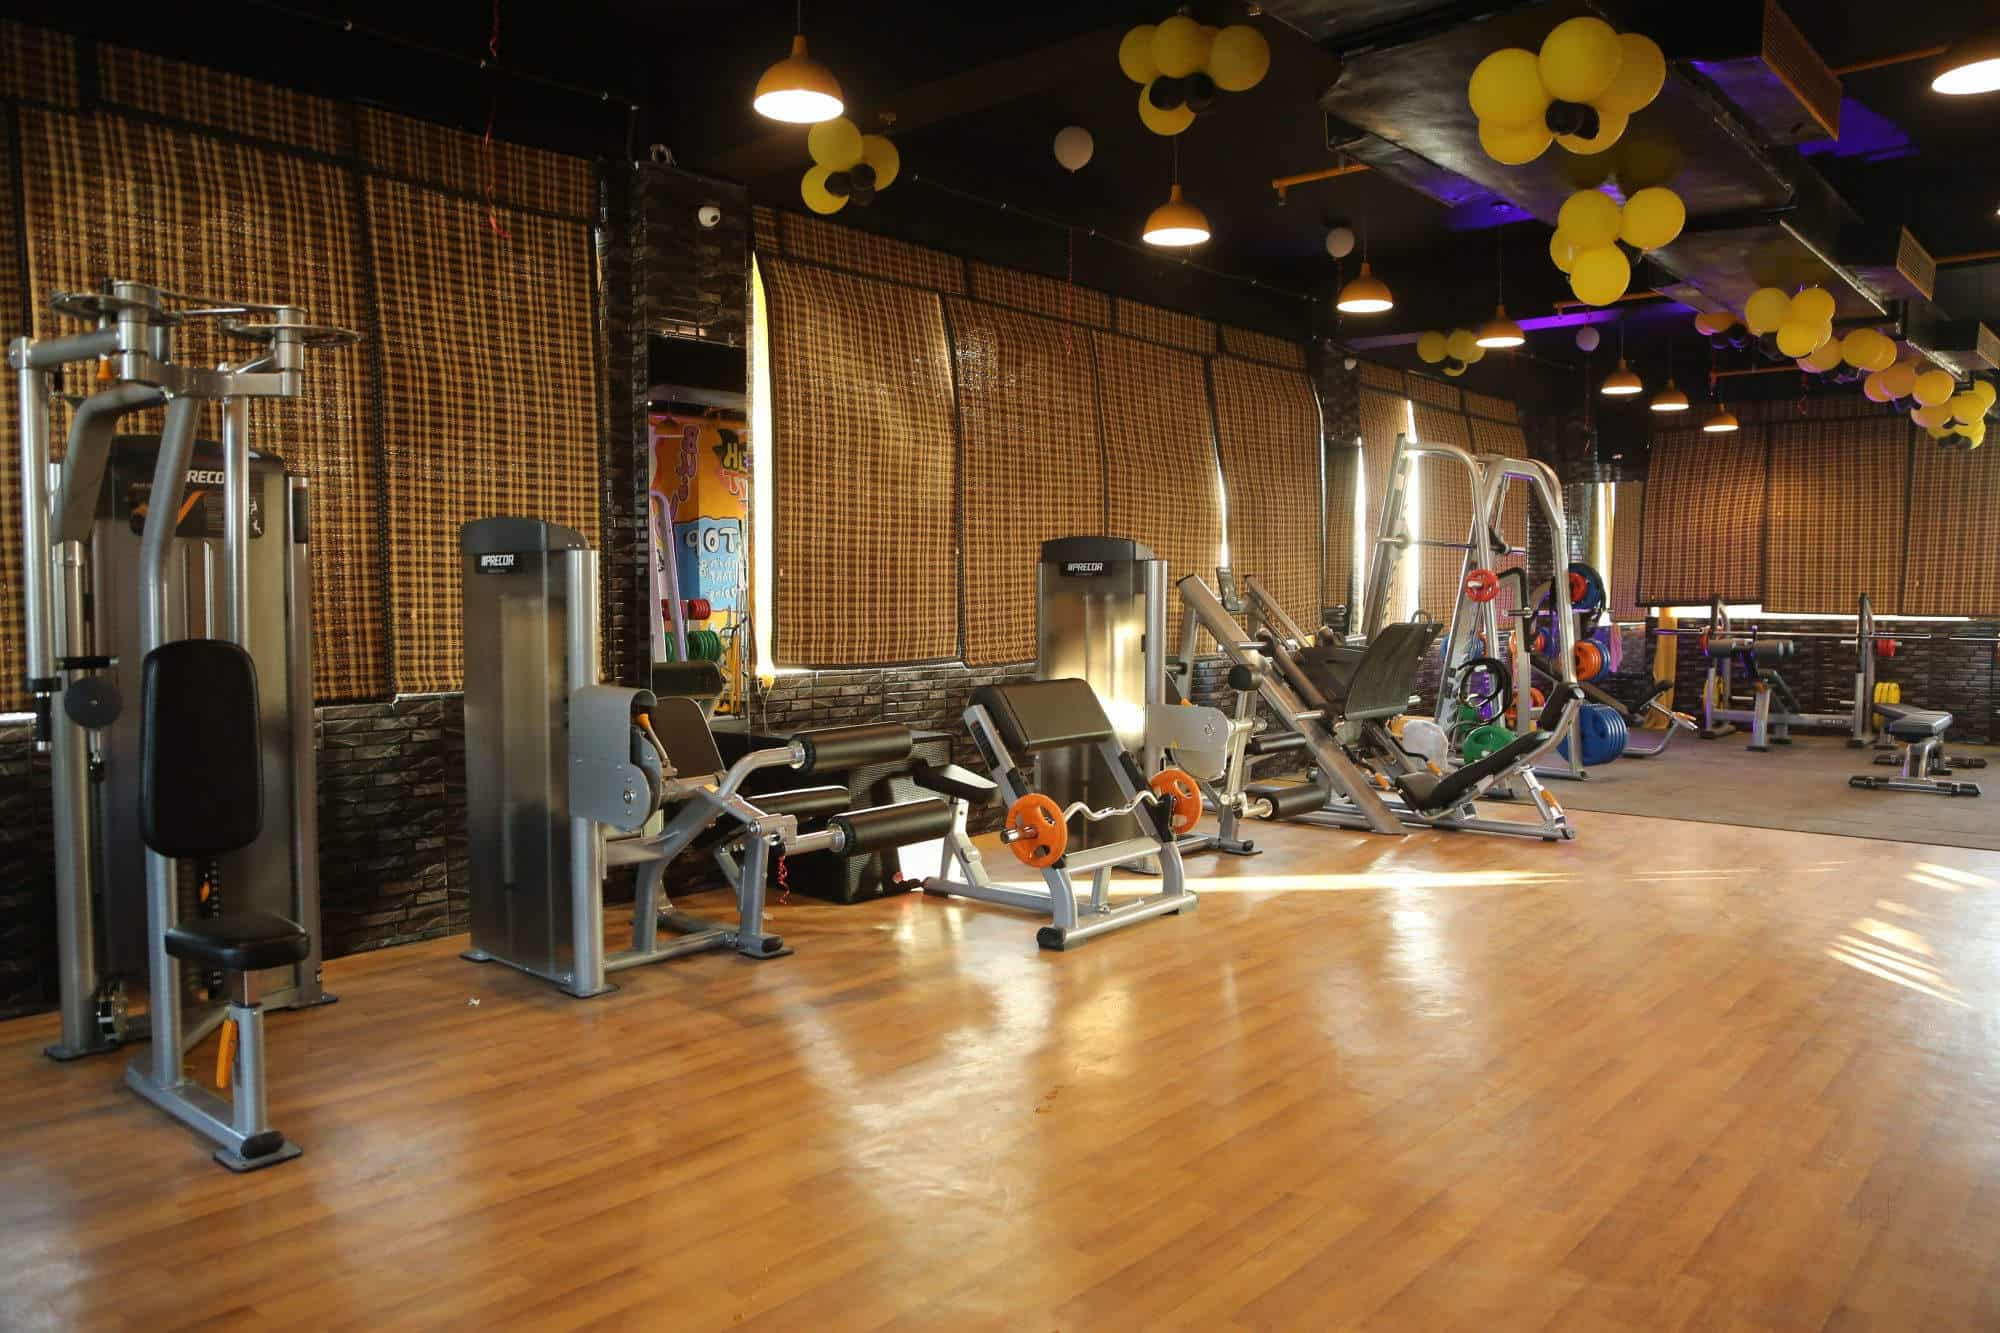 Gold Gym - Gyms in Chandigarh - Justdial